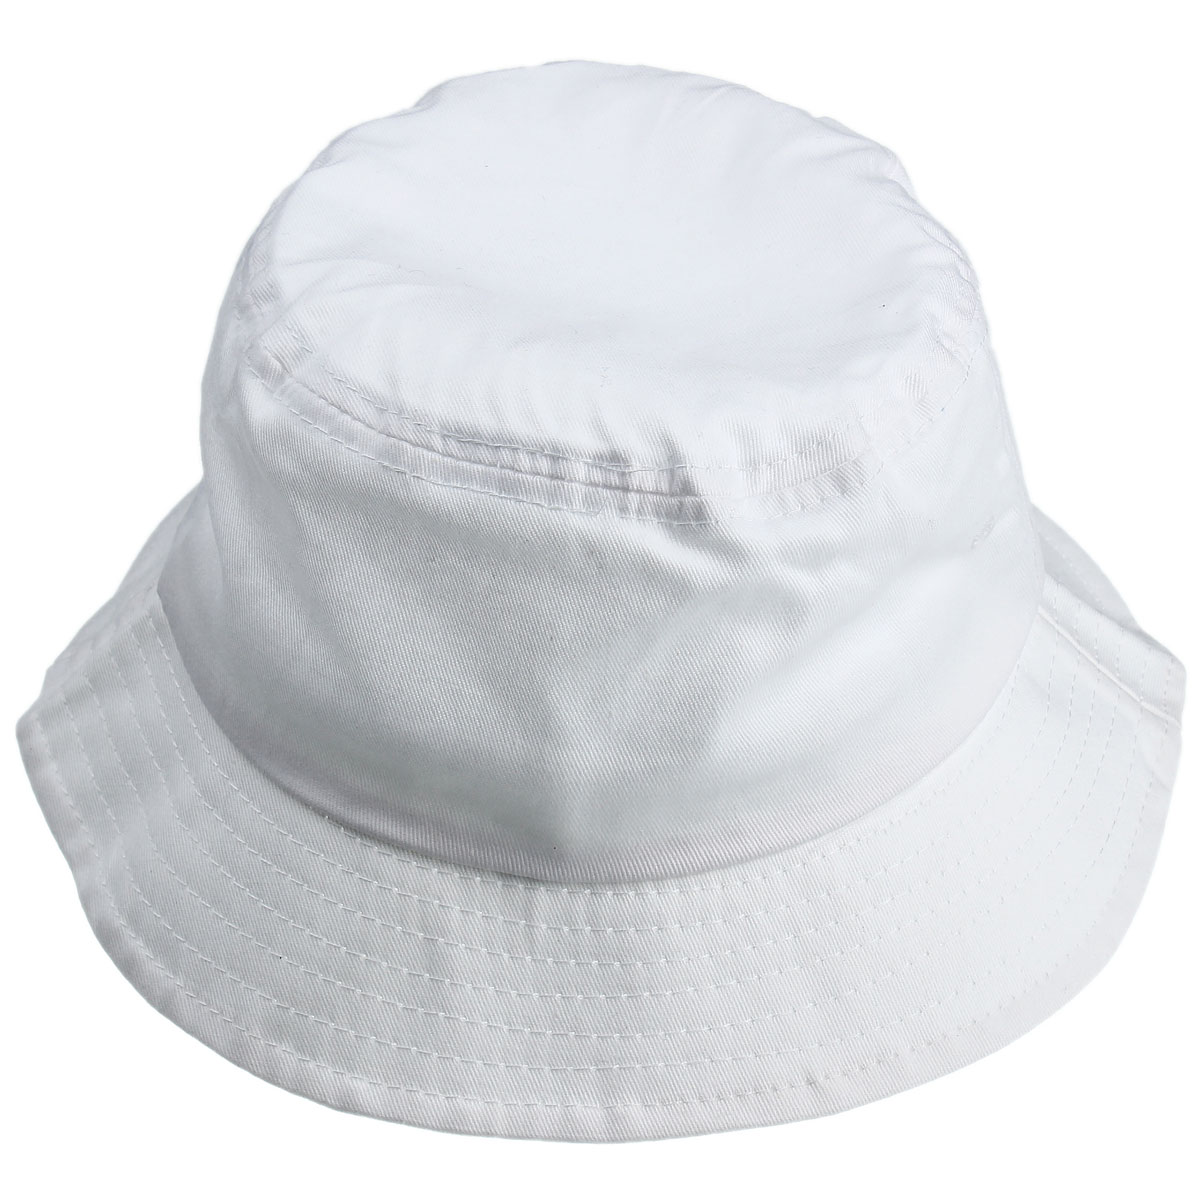 Buy 666 embroidery fisherman cap white cotton bucket for White cap fish